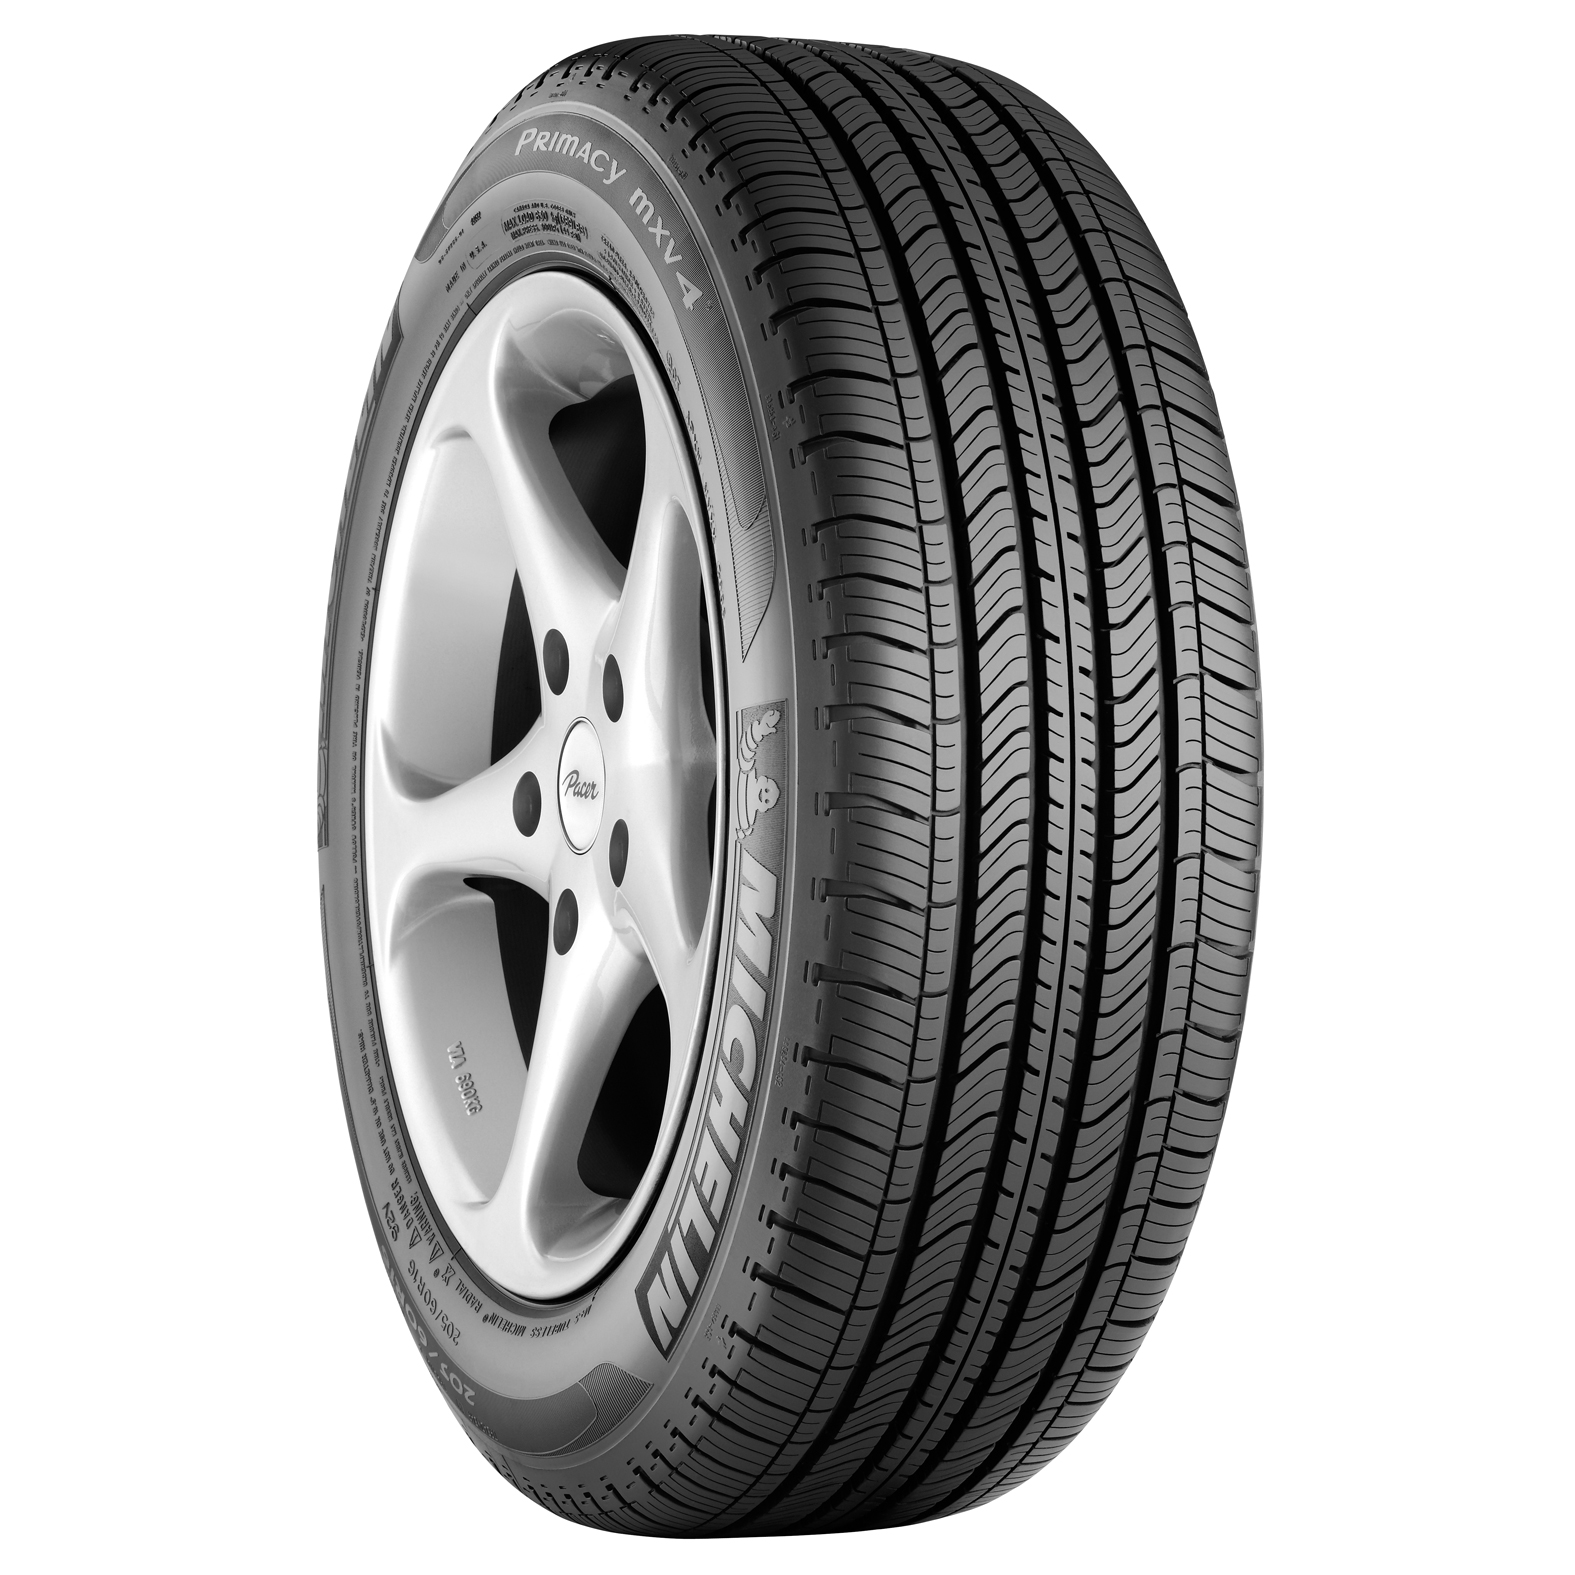 Michelin PRIMACY MXV4 tire - angle